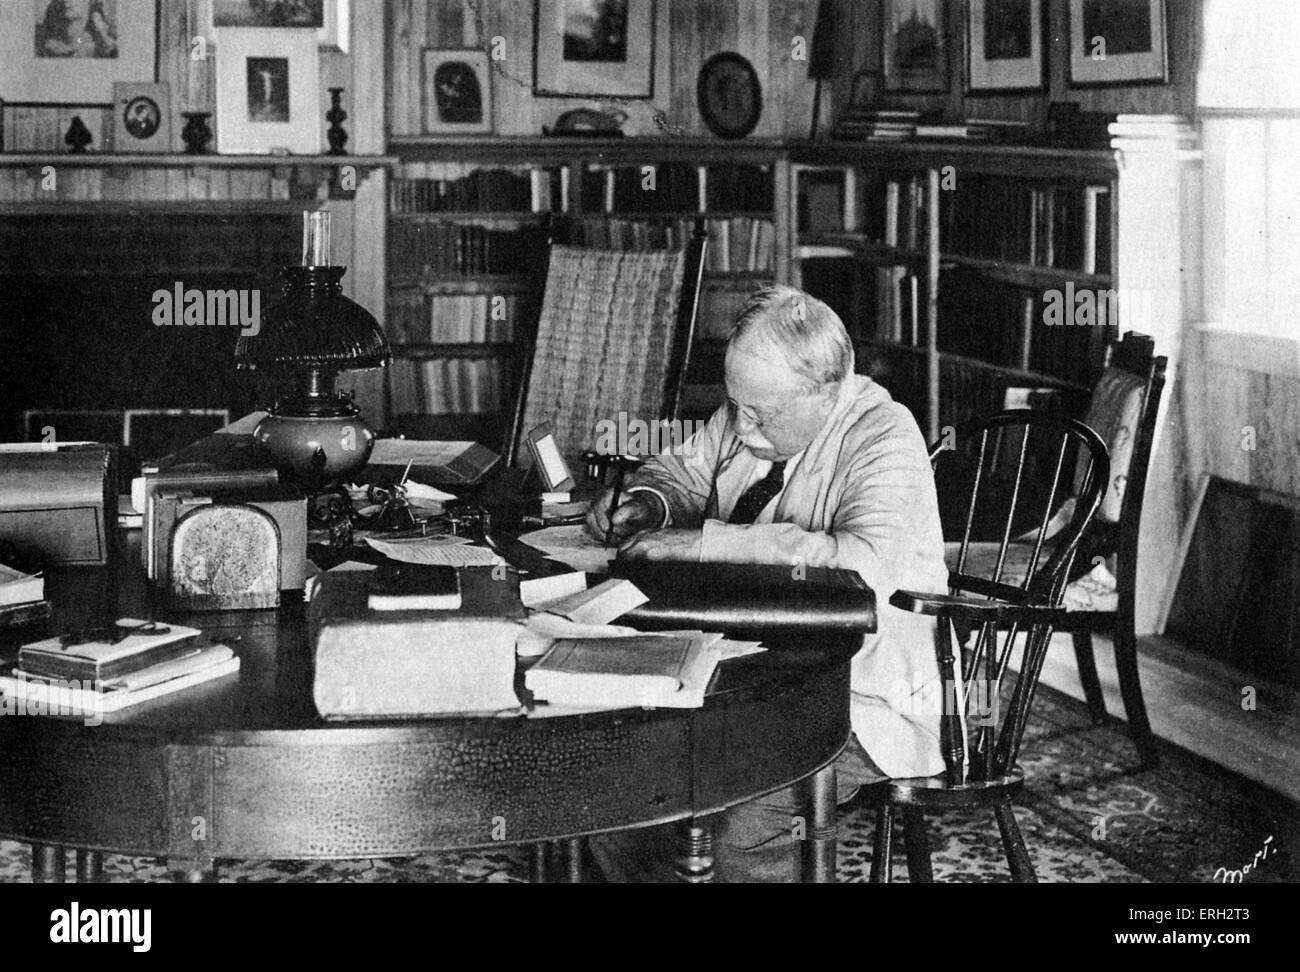 Realist Writing Essays William Dean Howells Writing At His Desk At Home  Beacon Street ERHT Realist Writing